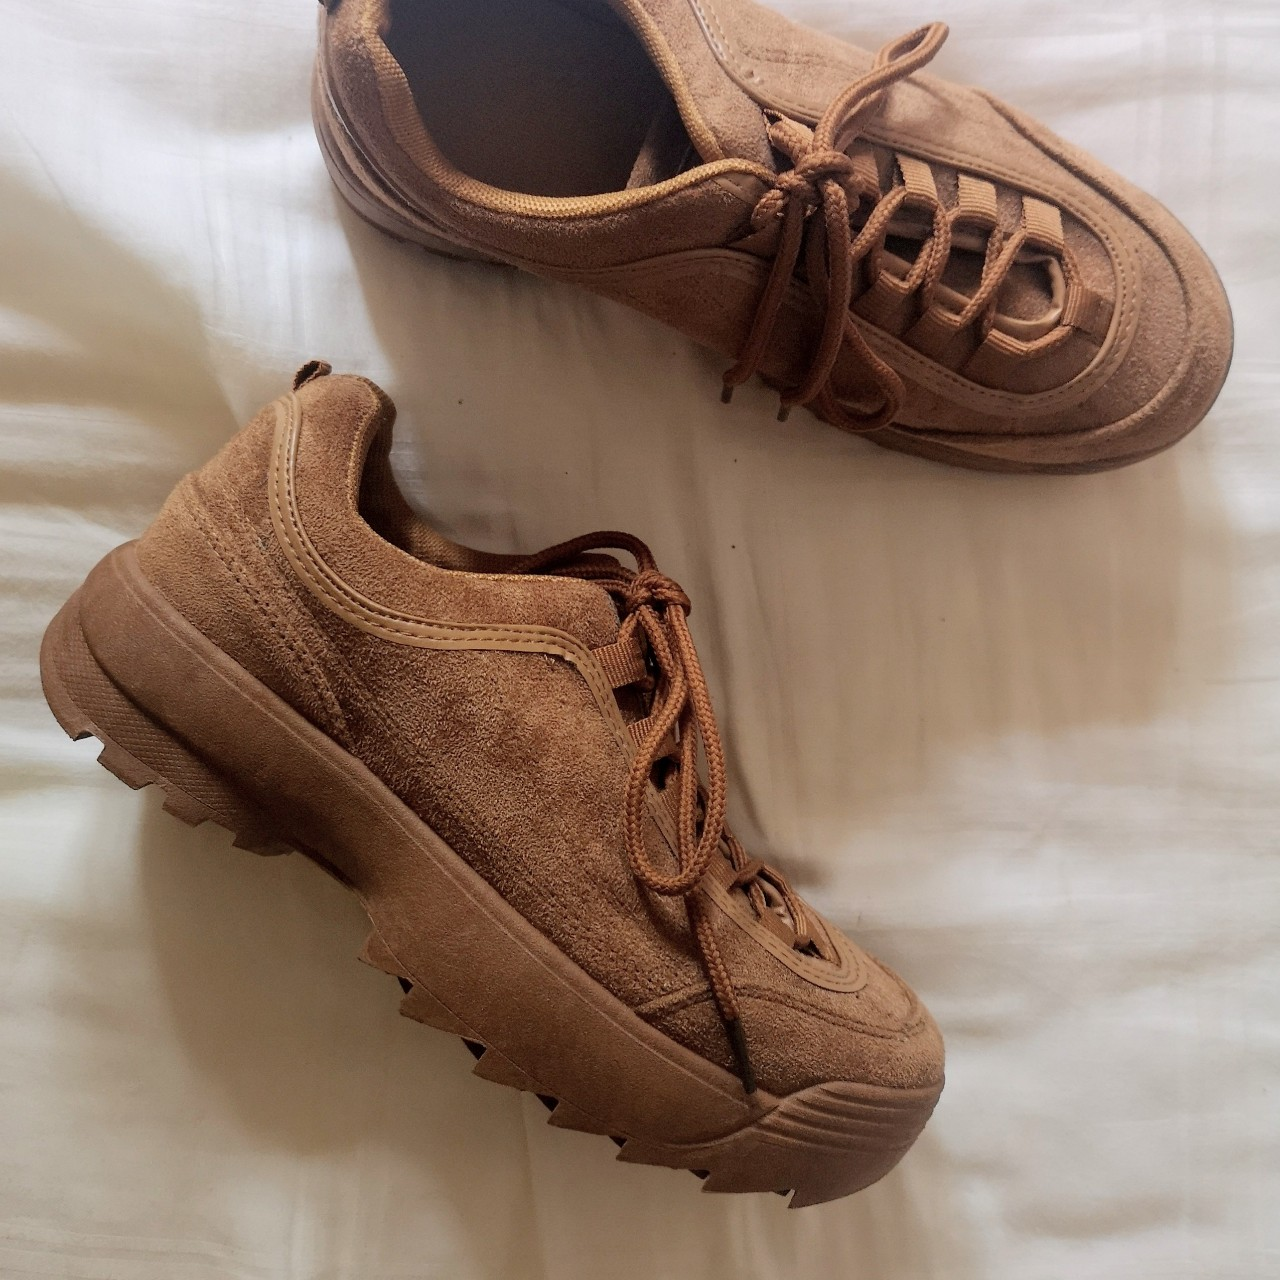 Brand new camel coloured trainers from